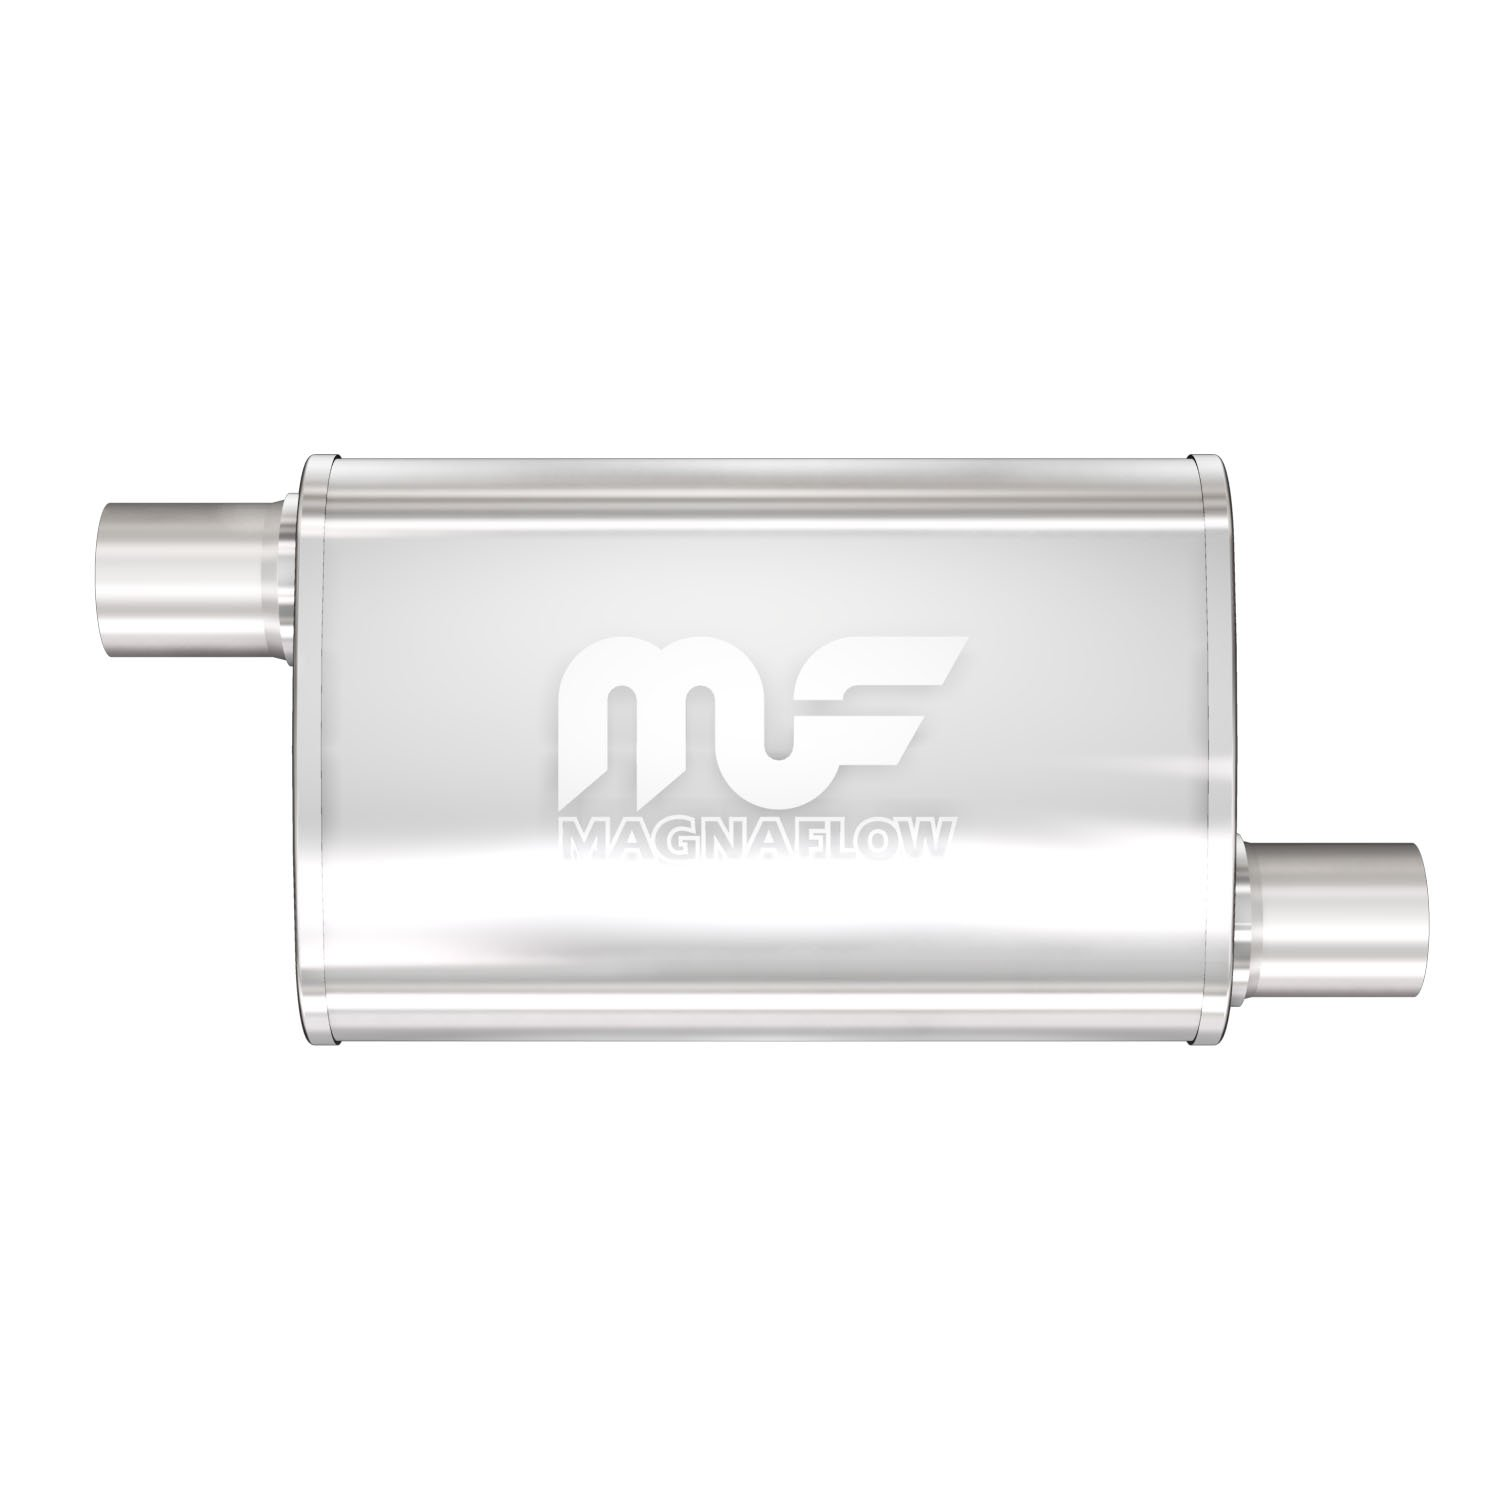 magnaflow 4 x 9 oval muffler offset in offset out 2 5 2 5 body length 14 overall length 20 core size 2 5 satin finish